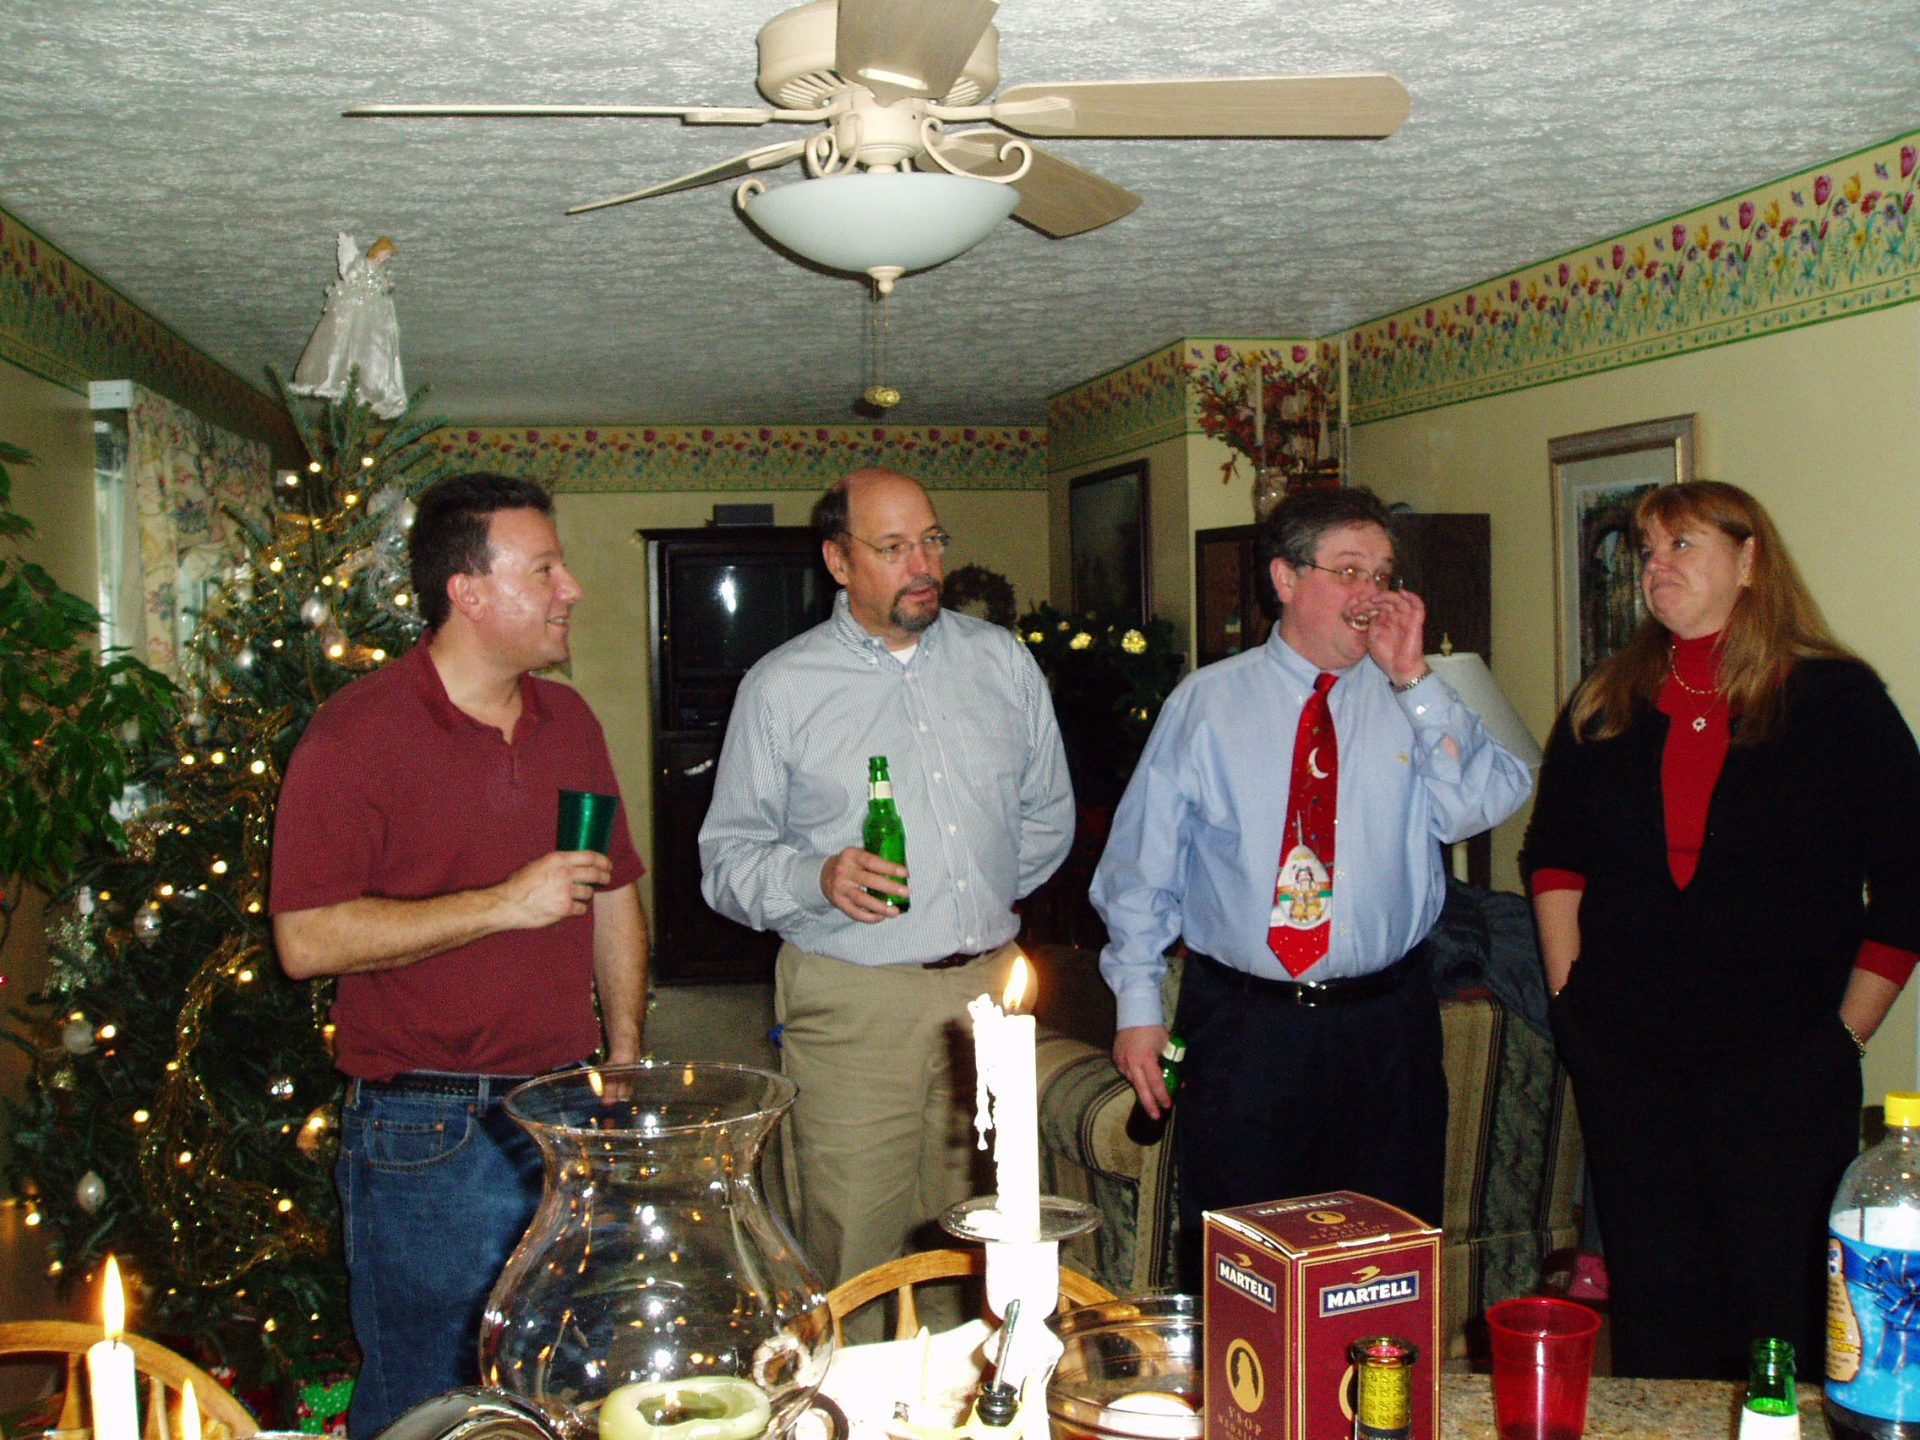 2005 Holiday Party - John Sheers, Richard Henry, Fred Foote, Sue Lyles